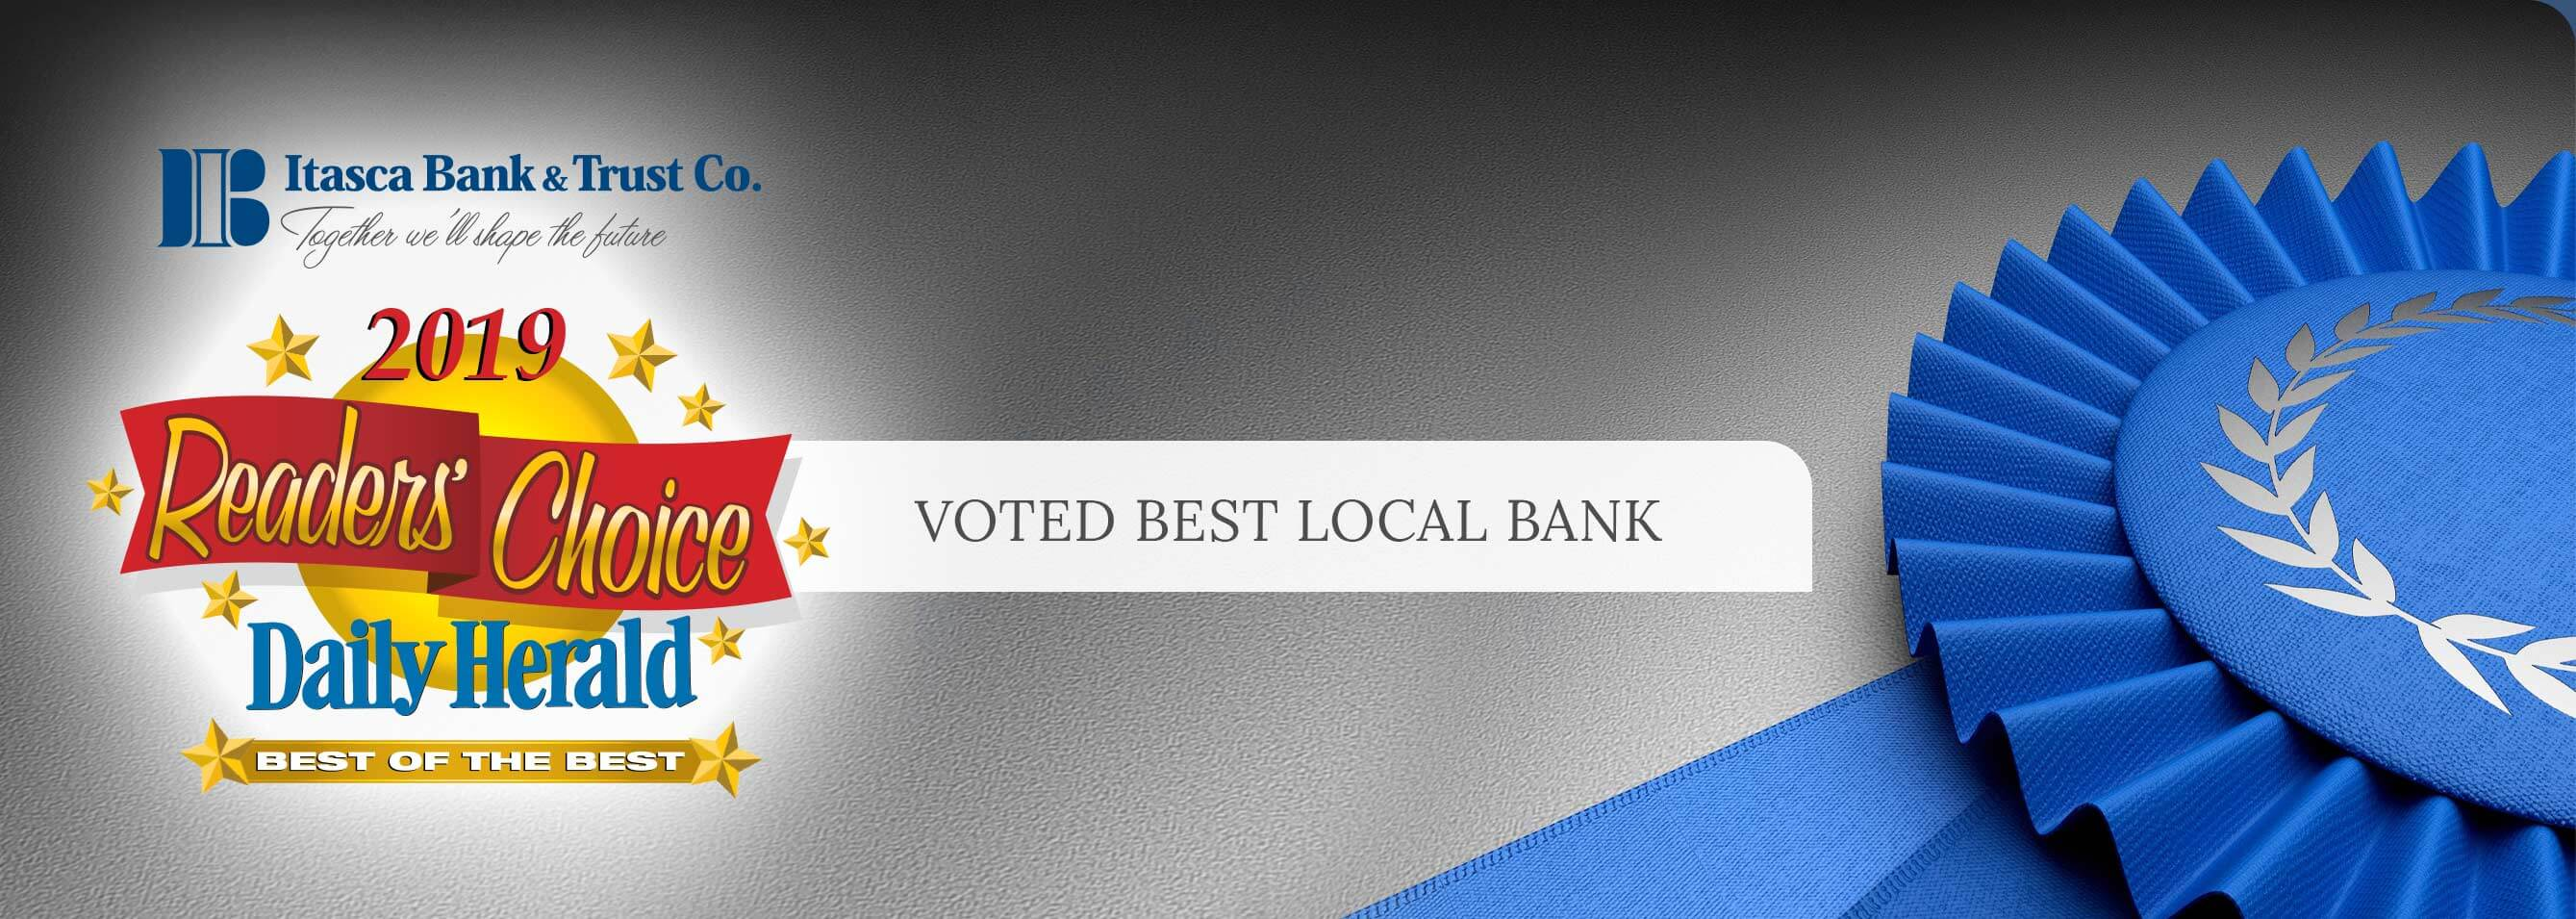 Itasca Bank and Trust Co. Voted Best Local Bank - 2019 Readers Choice Daily Herald Best of the Best.